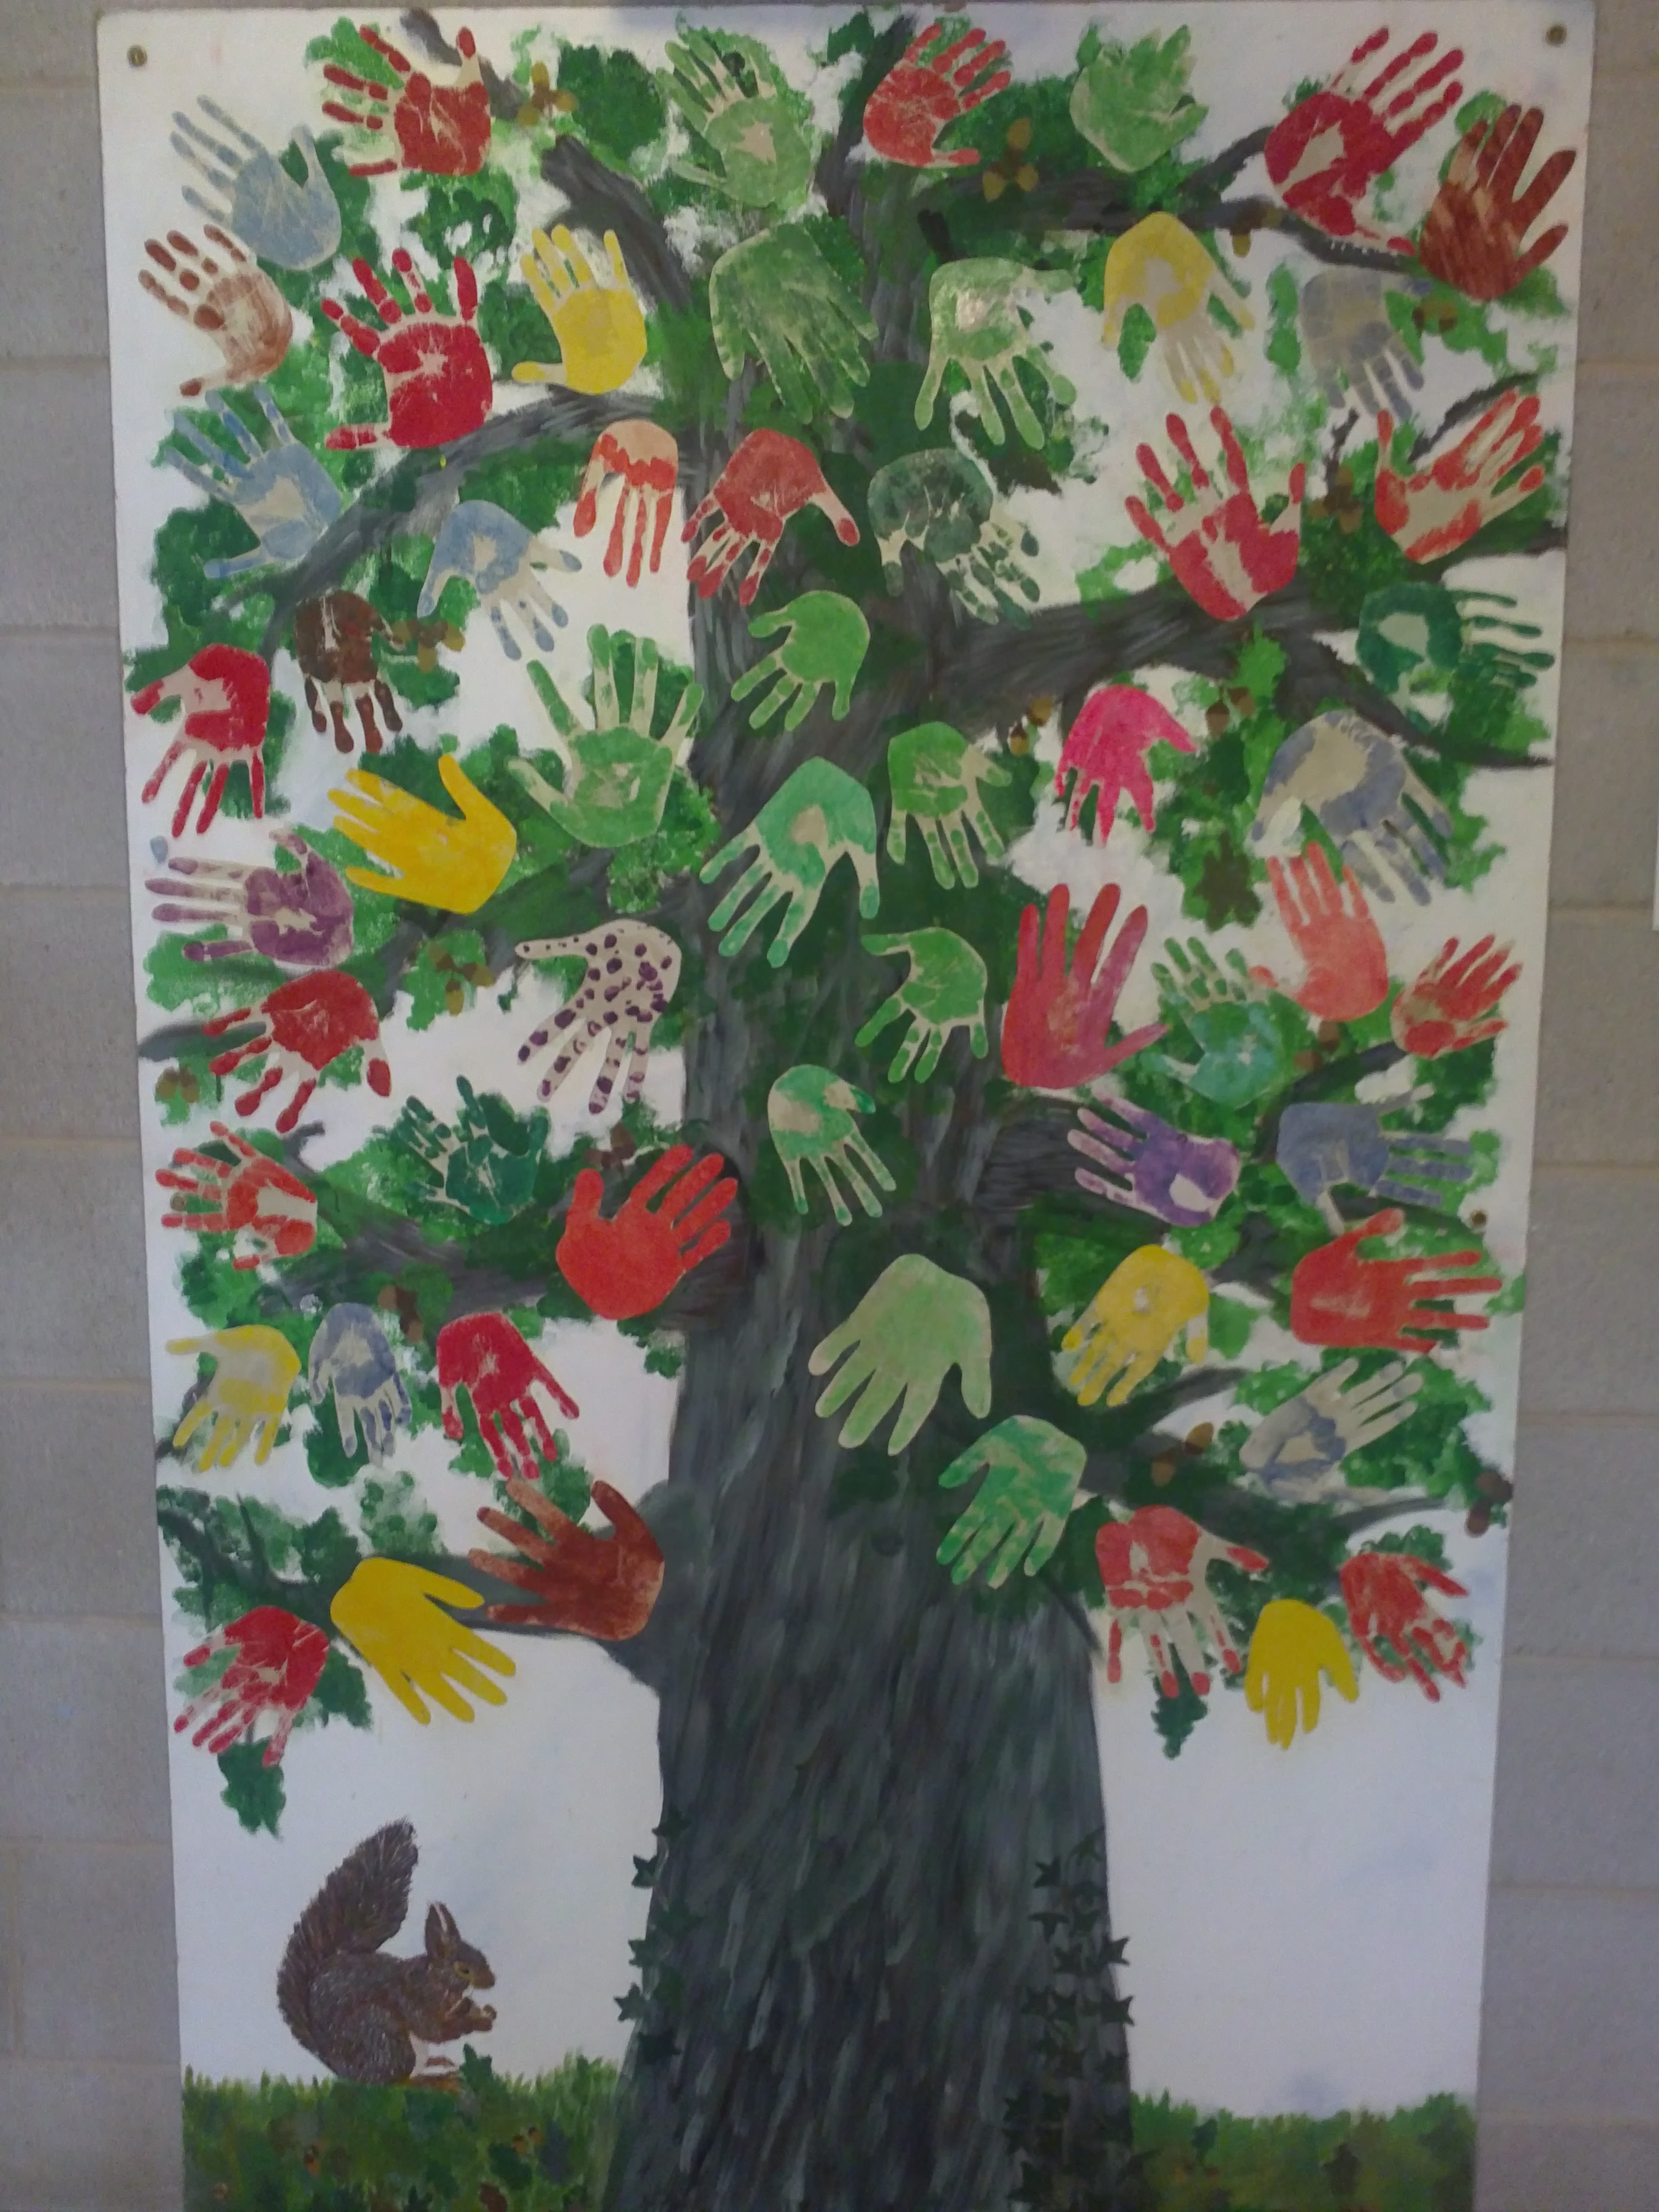 I Have Been Working With Adults Learning Disabilities For Over 20 Years Here Is A Sample Of Some The Projects Worked On